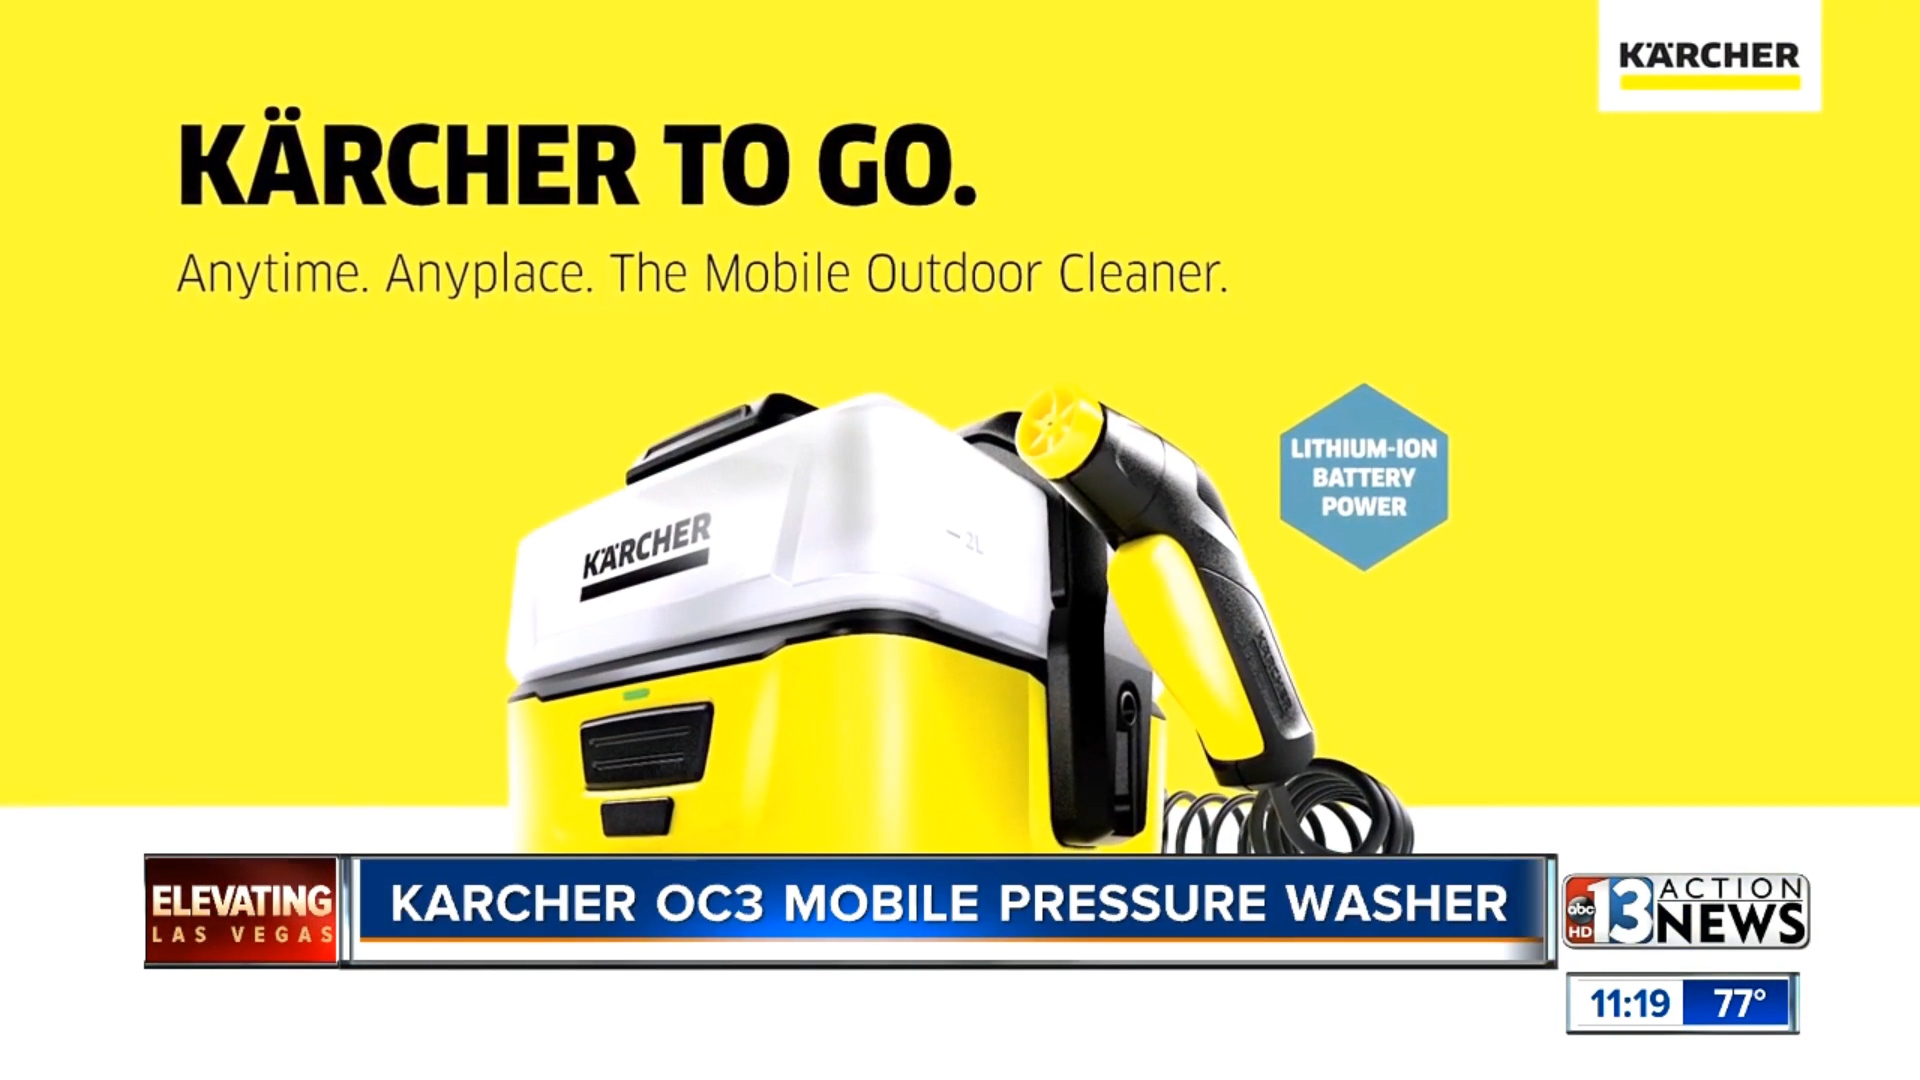 KARCHER OC3 MOBILE PRESSURE WASHER - $189.99Shop Now